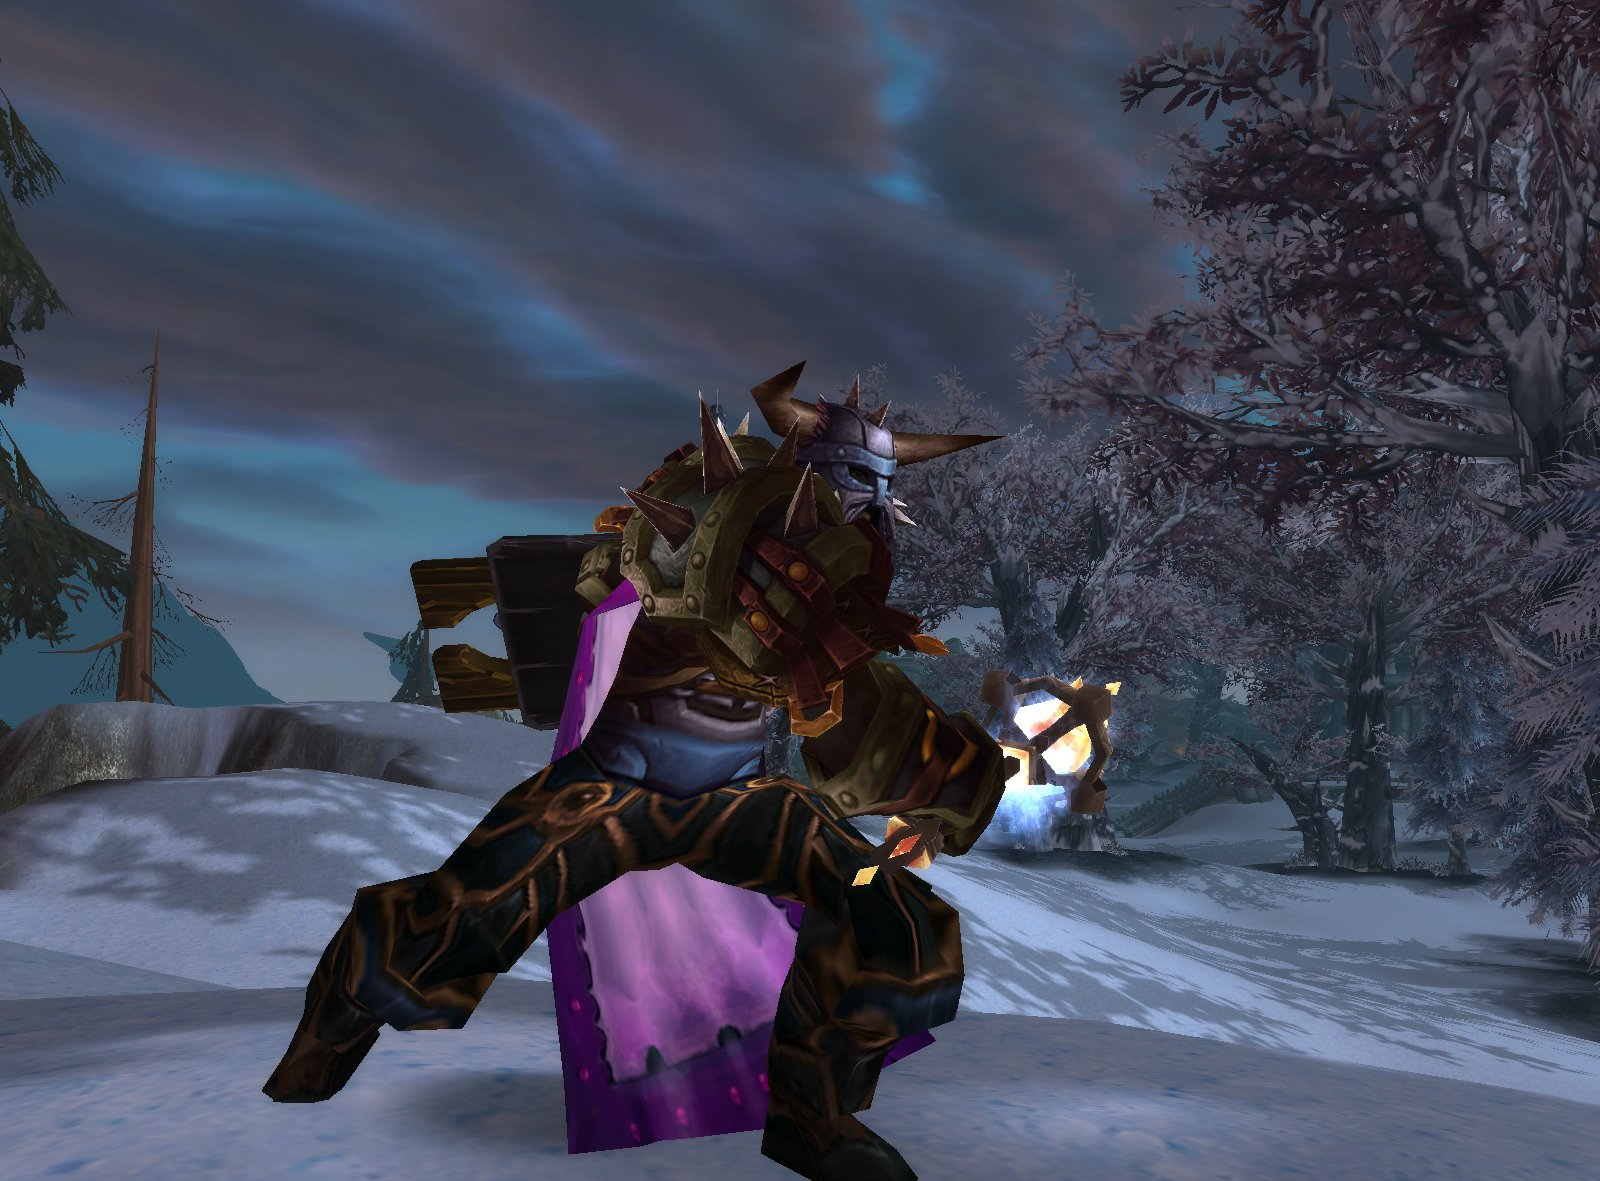 VE3D Image for World of Warcraft Wrath of the Lich King (PC) - August